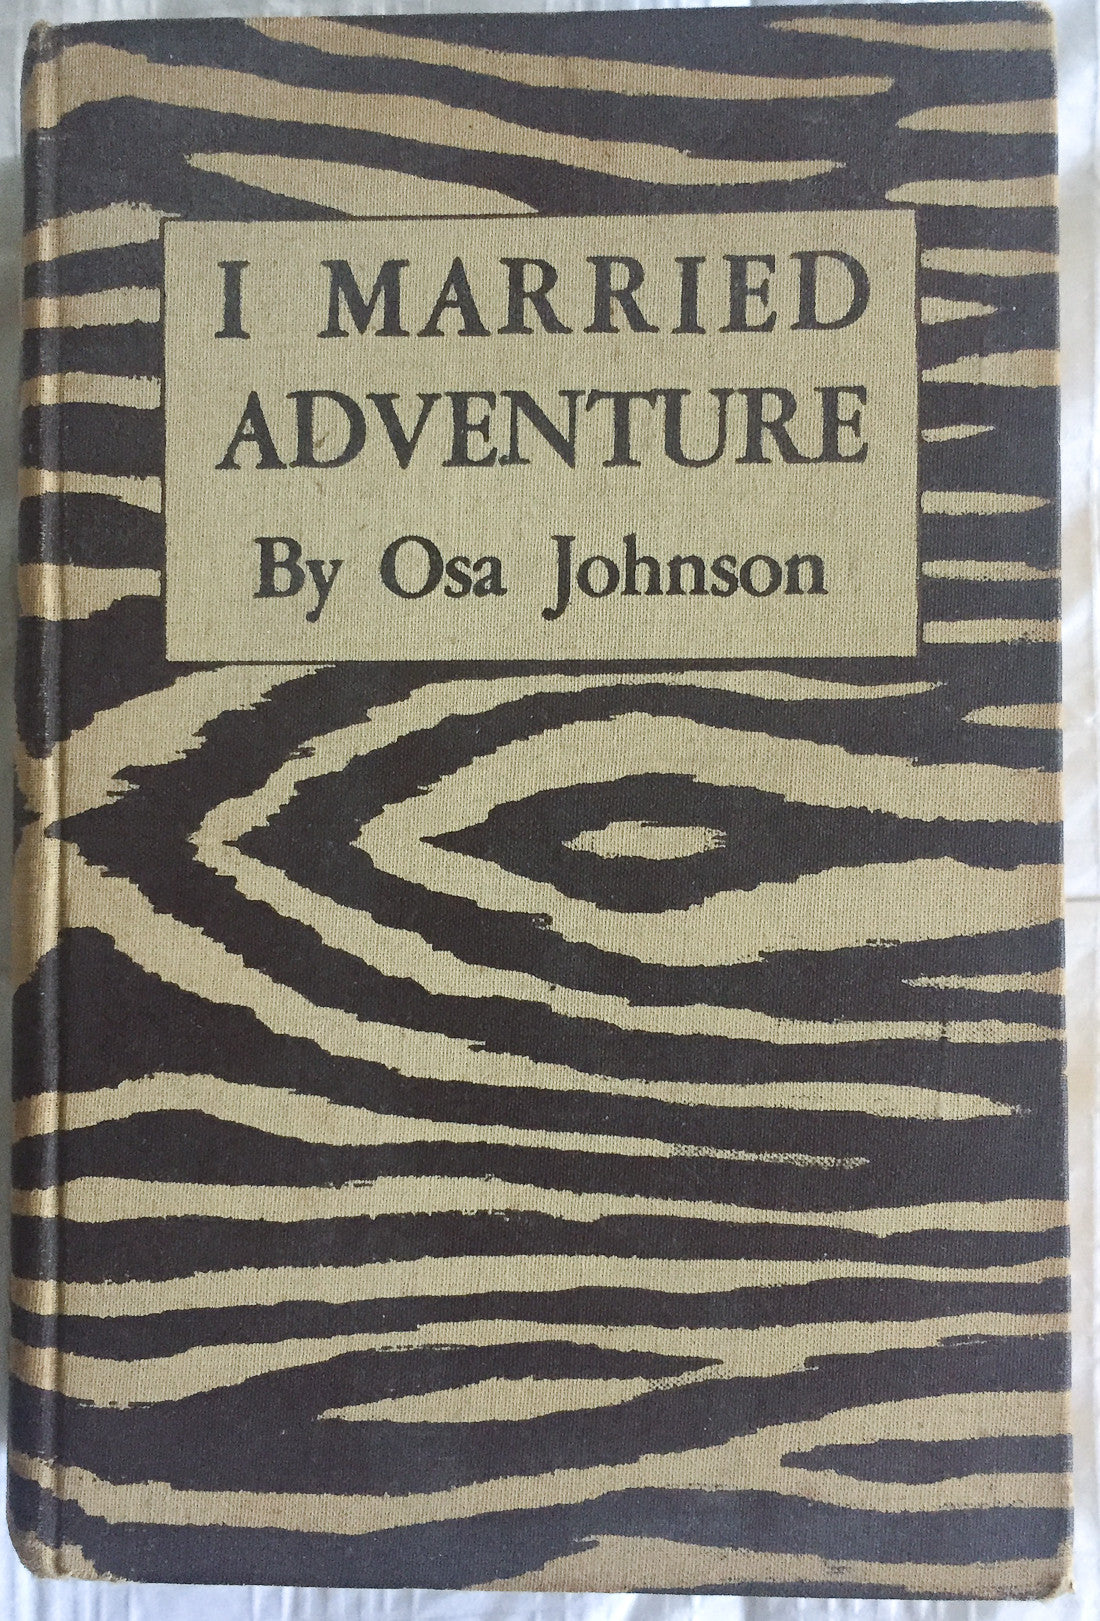 I Married Adventure Book - 1942